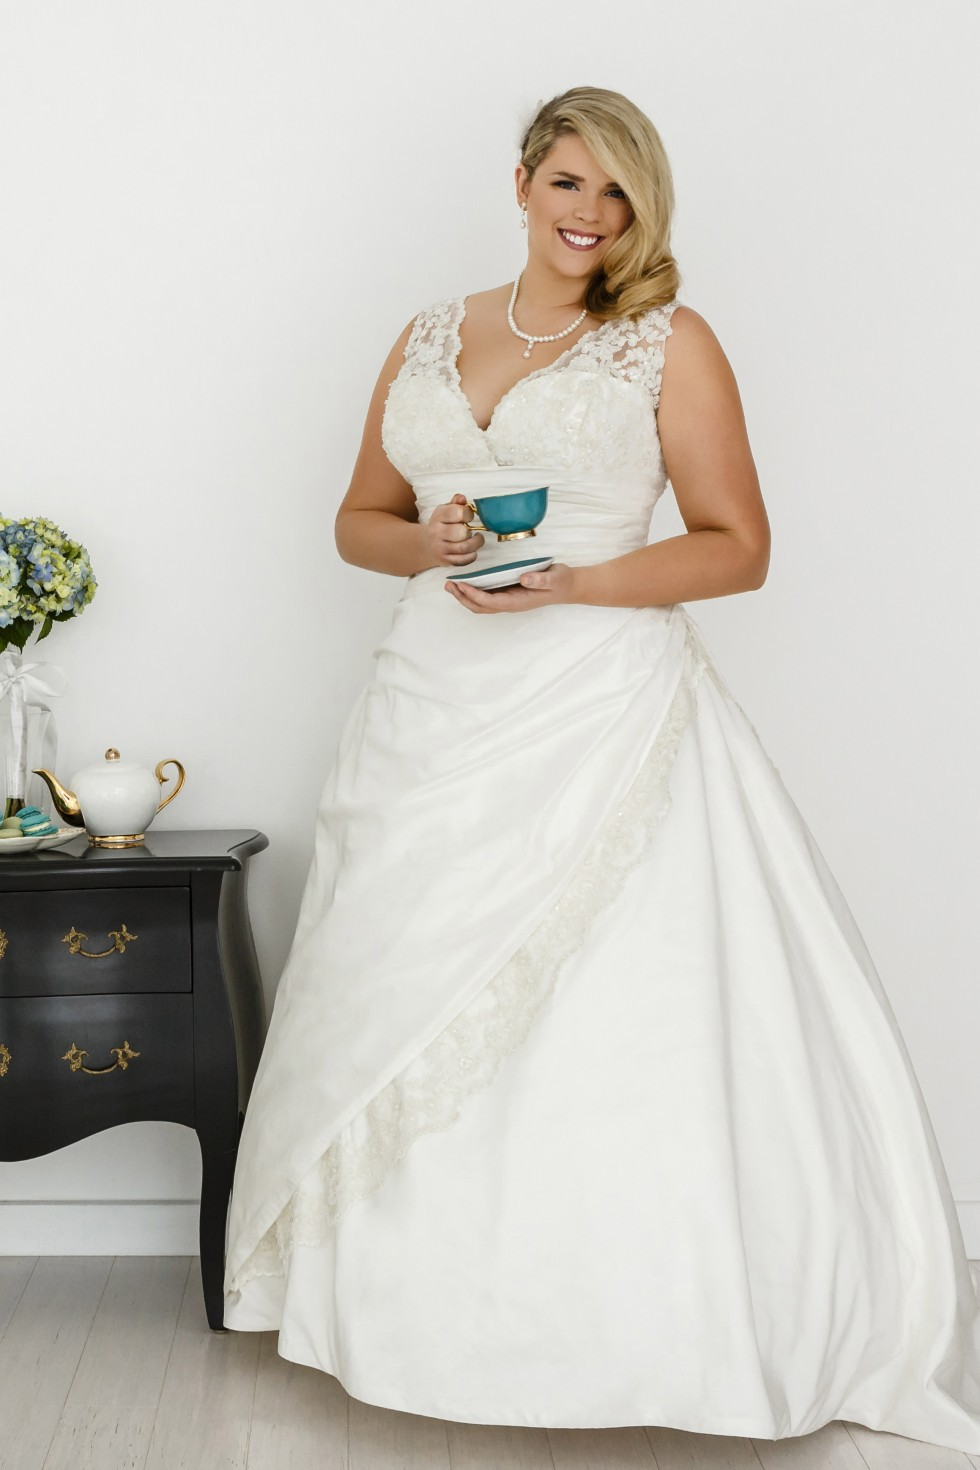 Department Stores To Buy Wedding Dresses Depthfirstsolutions That Sell Vosoi Com Ombrellifo